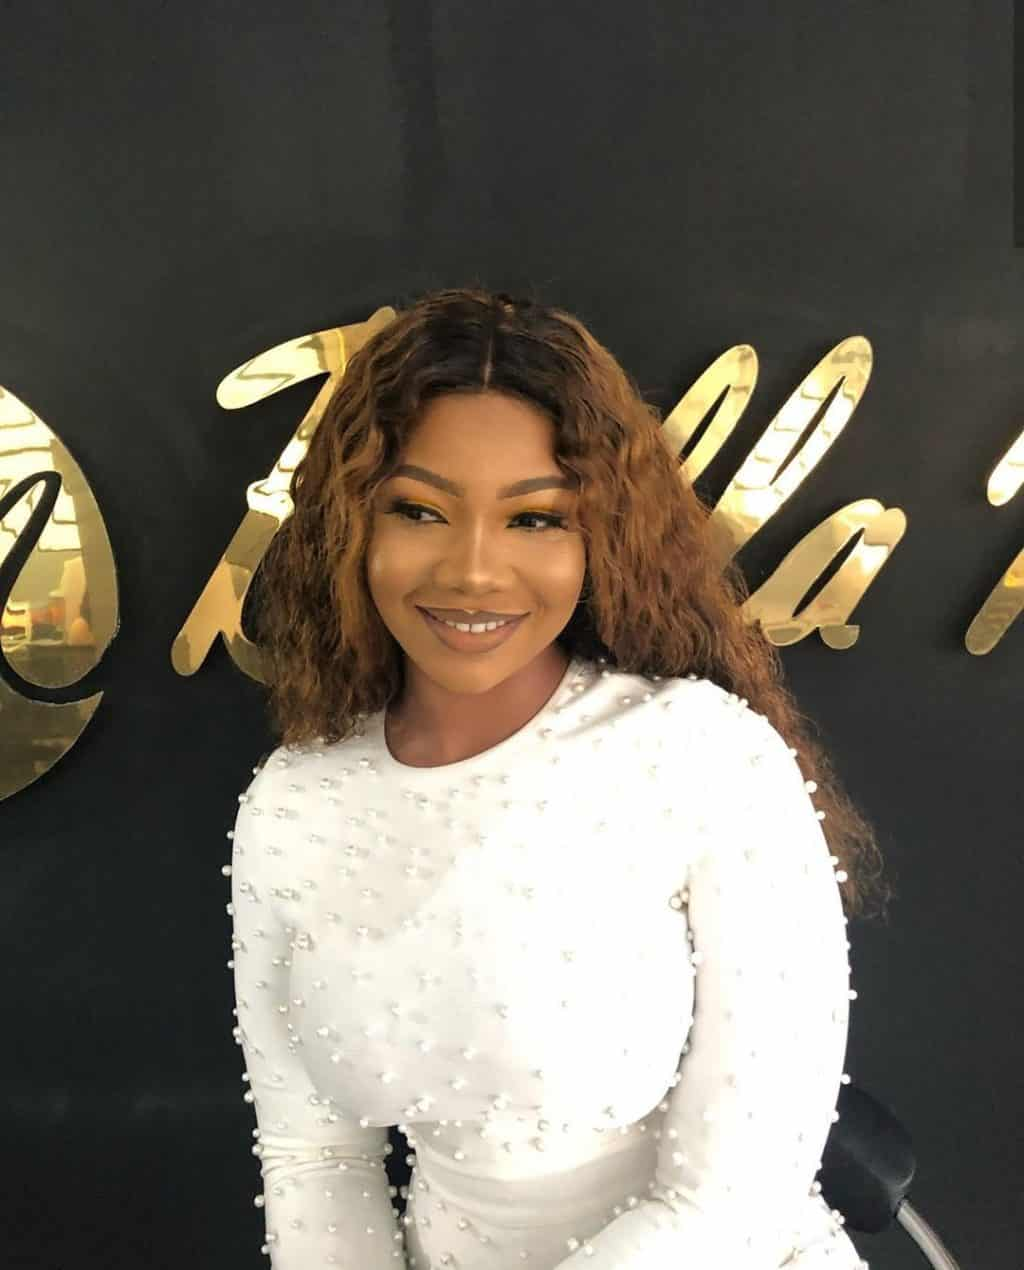 Watch moment a fan snatched Tacha's glasses from her, Watch moment a fan snatched Tacha's glasses from her [video], Latest Nigeria News, Daily Devotionals & Celebrity Gossips - Chidispalace